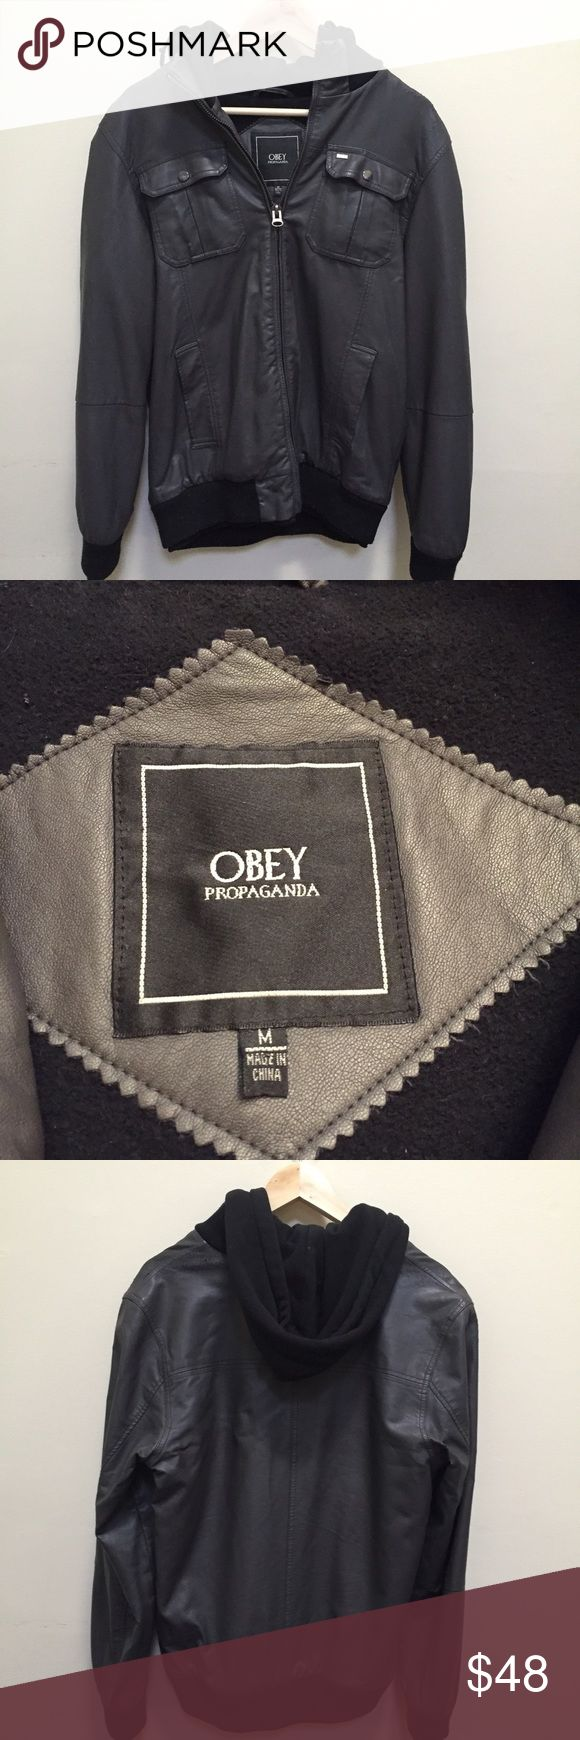 Obey Propaganda Faux Hoodie Leather Jacket for Men Obey Propaganda Faux Hoodie Leather Jacket! Hipster Jacket purchased from Urban Outfitters! The black cotton hoodie is connected to dark gray vegan faux leather jacket and cannot be worn separately! Perfect jacket for fall and colder days! Buy it for your Guy💕💕💕💕💕Men size Medium Obey Jackets & Coats Bomber & Varsity